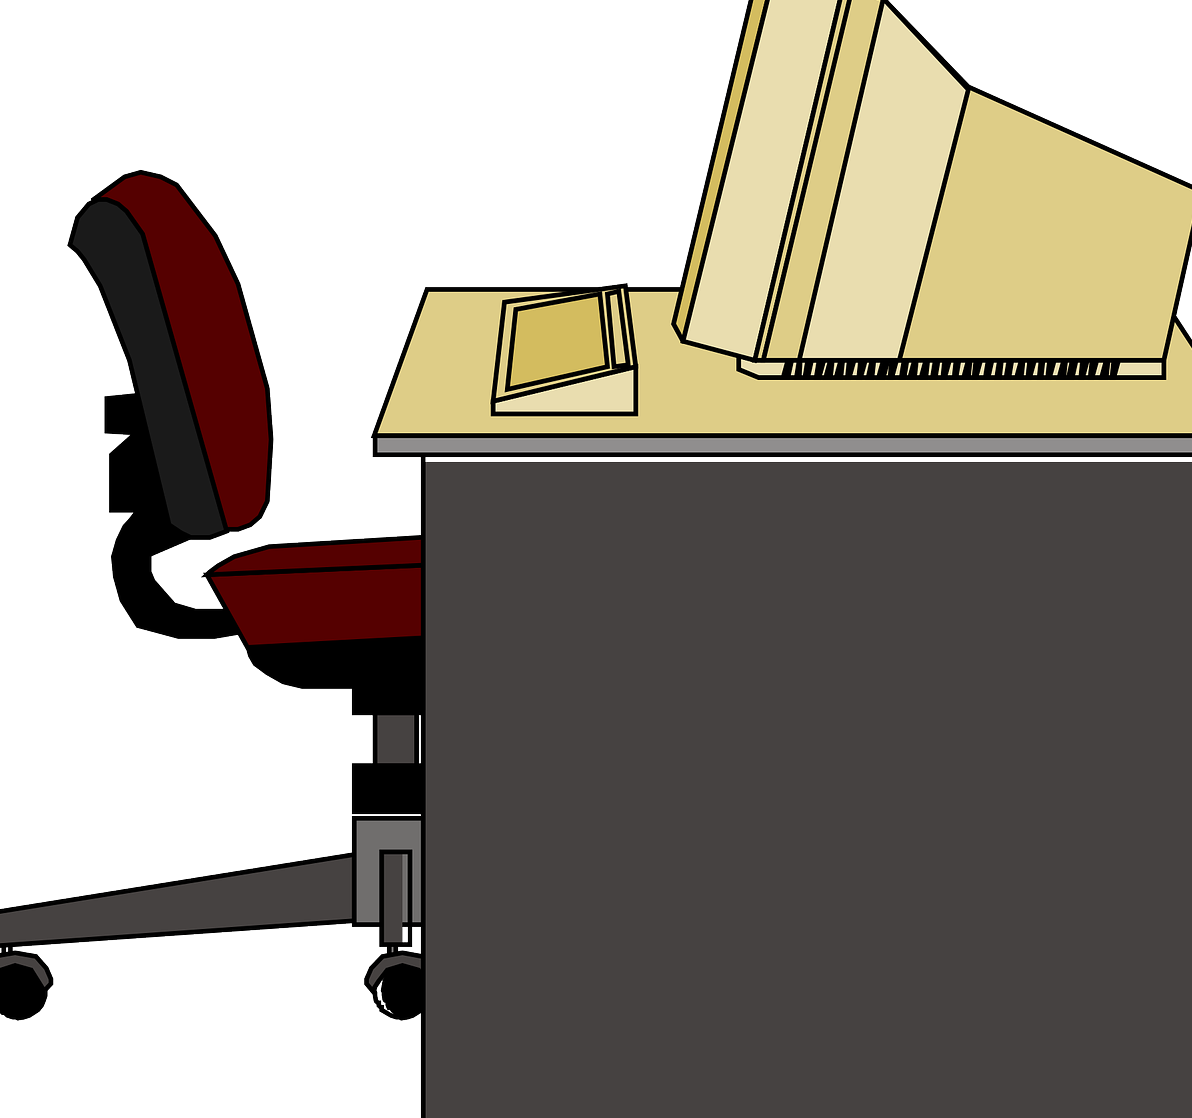 Furniture clipart office furniture. Purchasing the andoli group